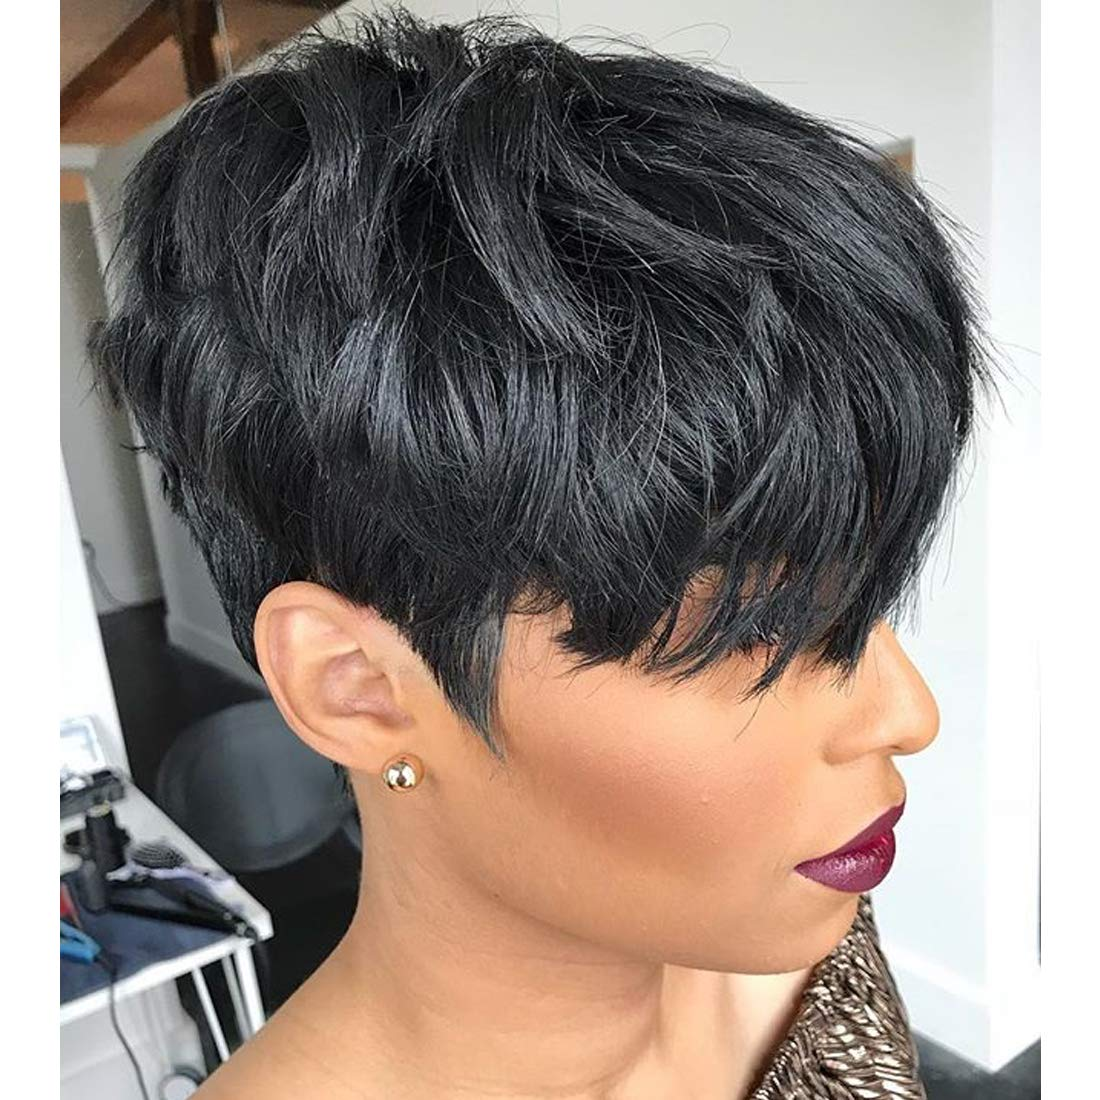 Amazon Com Yviann Human Hair Short Wigs Pixie Cut Wigs With Bangs Short Black Layered Wavy Wigs For Women 1b Color Beauty